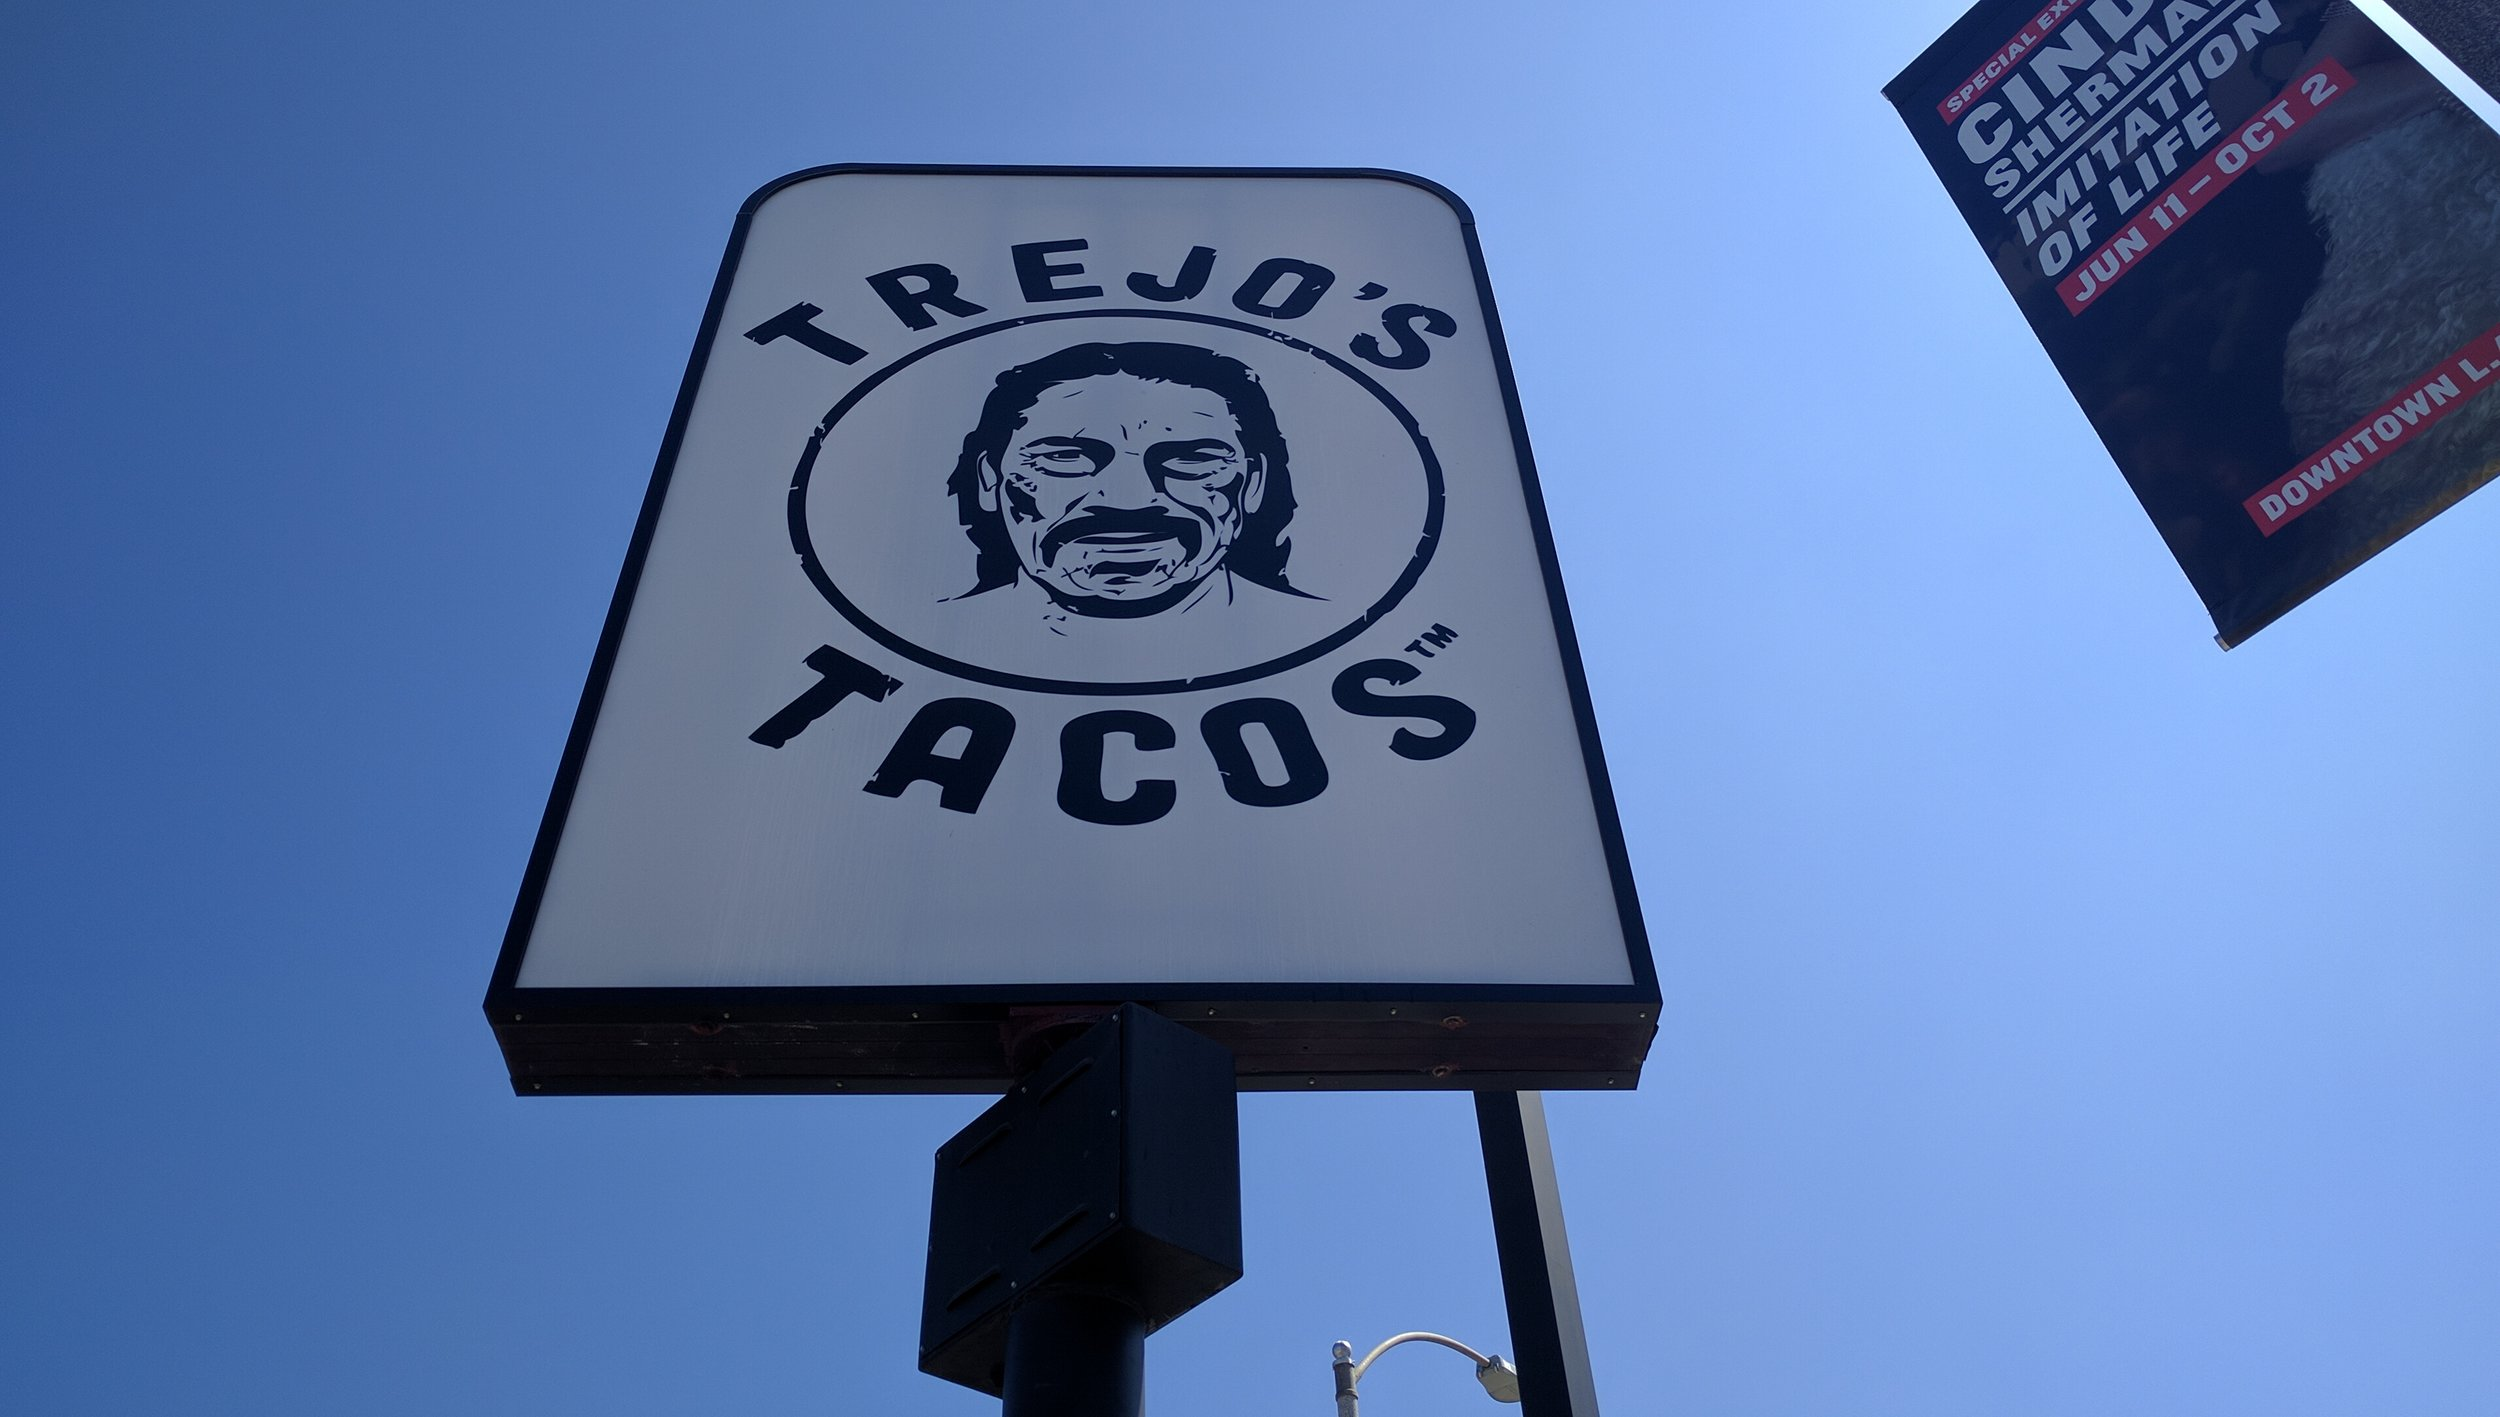 There is no way you will miss Trejo's while driving down La Brea